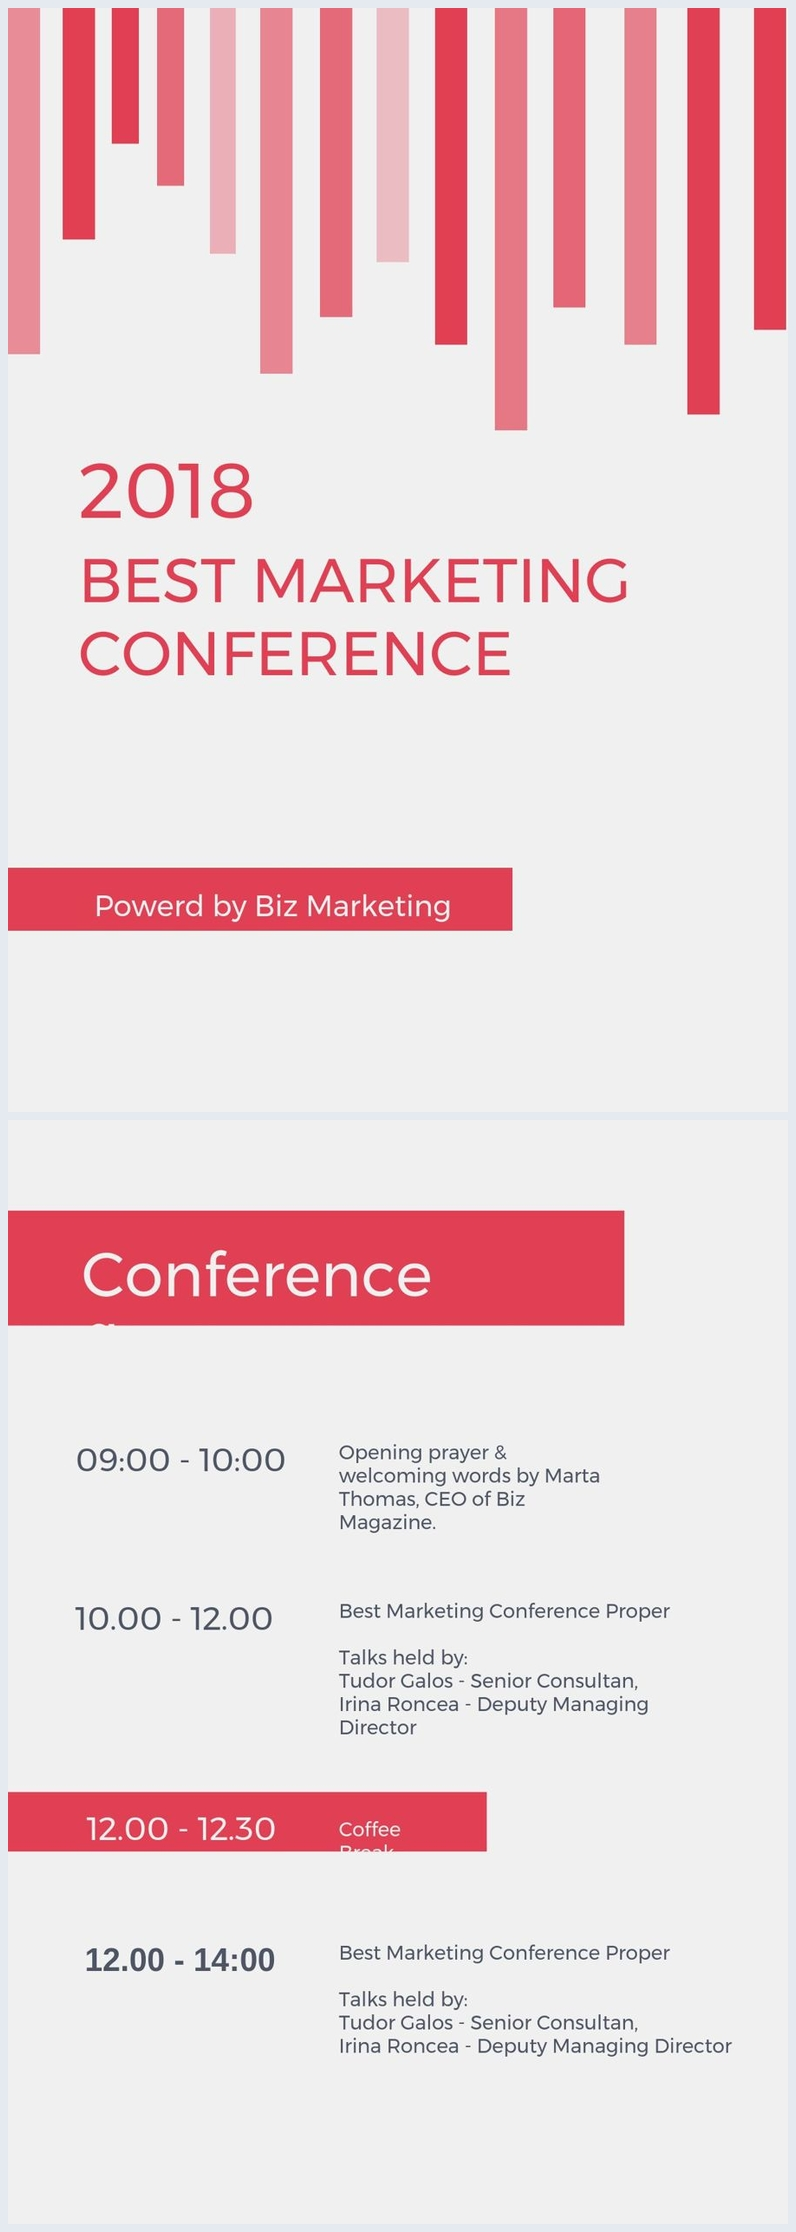 Conference Agenda Example